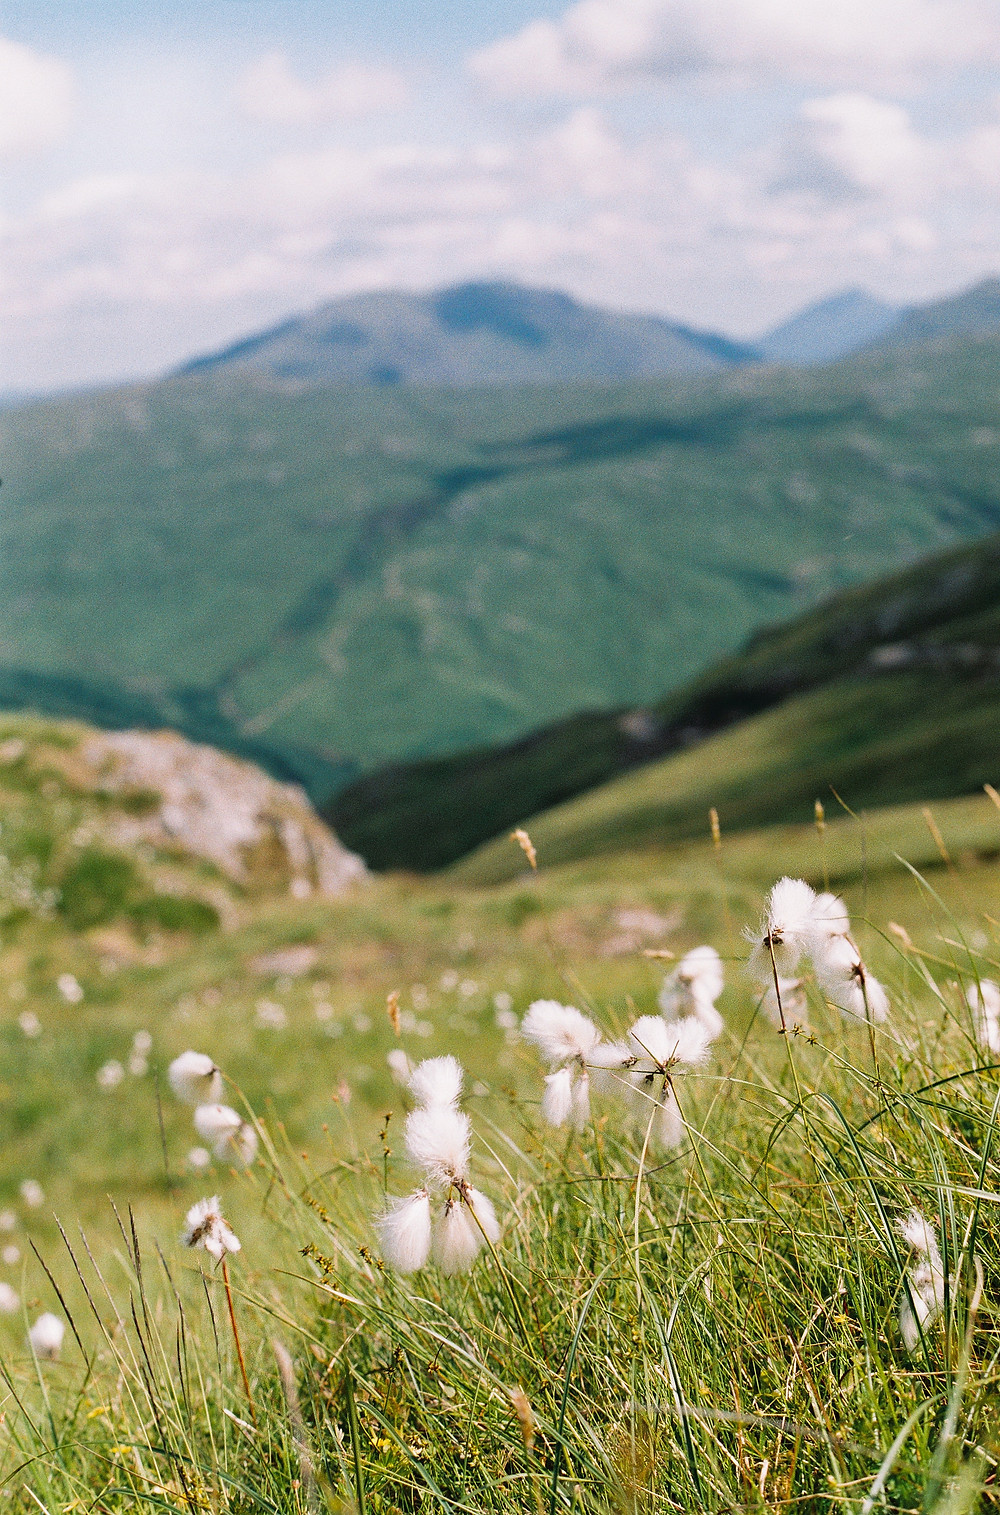 close up of some grass amongst hilly countryside / fully grown